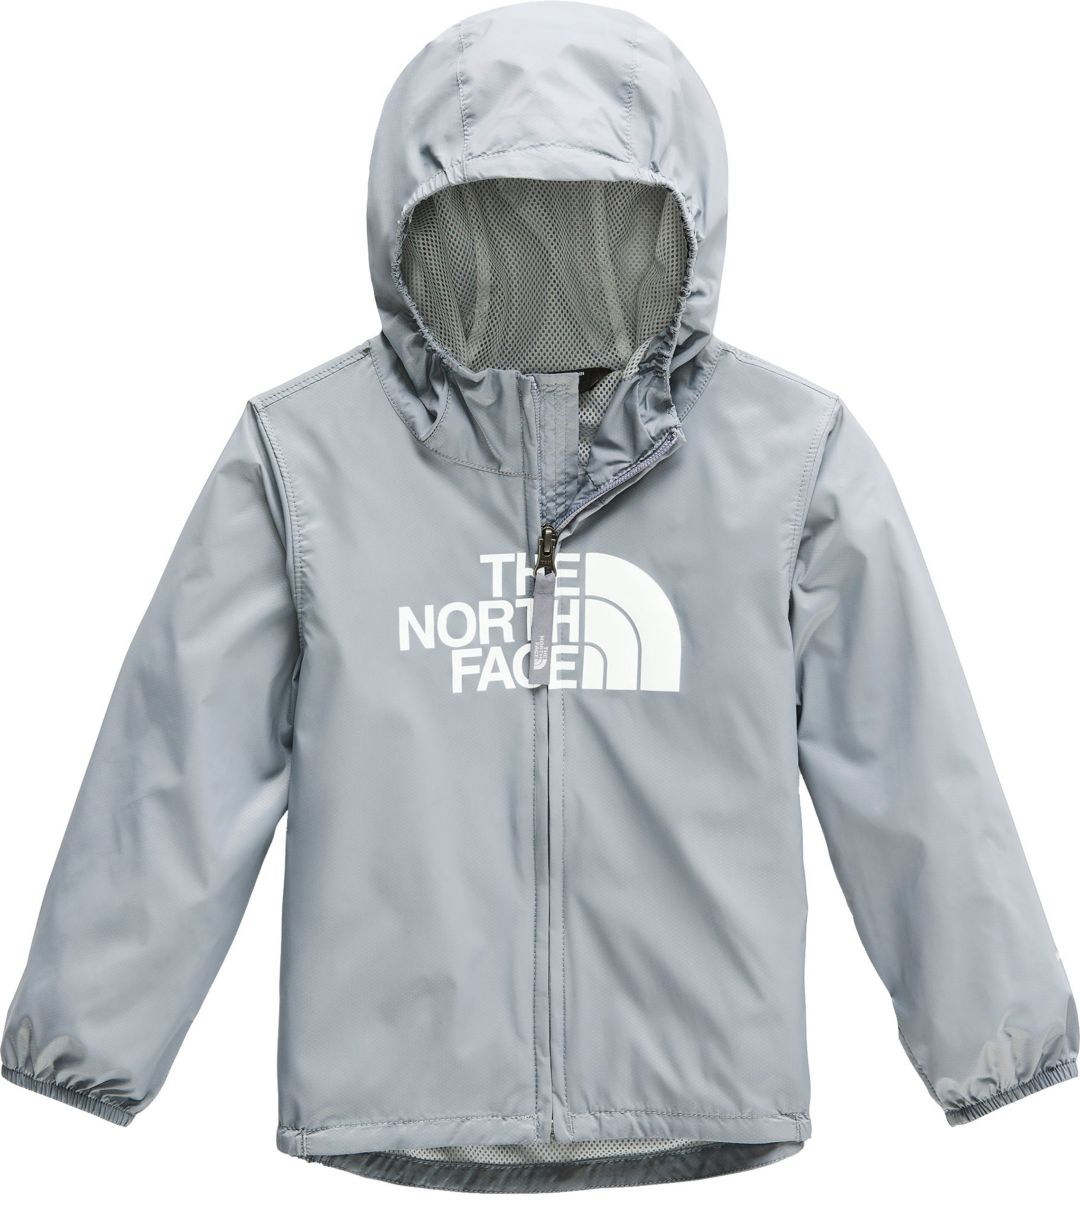 c842b0e9d The North Face Toddler Boys' Flurry Wind Jacket | DICK'S Sporting Goods